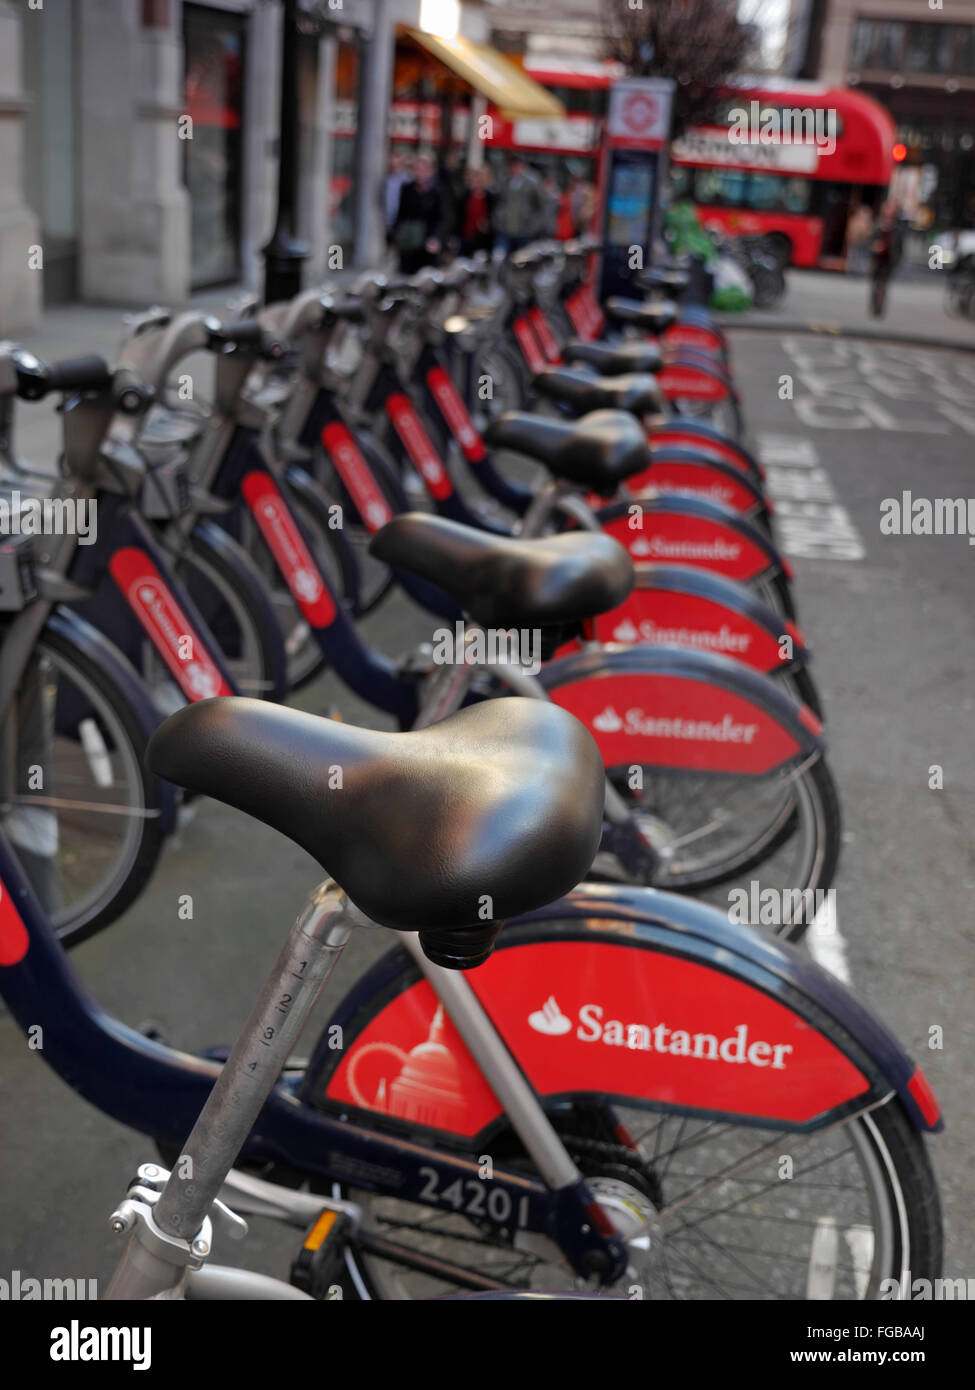 TFL London red rental hire bikes in Covent Garden with sponsor livery of Santander London UK - Stock Image